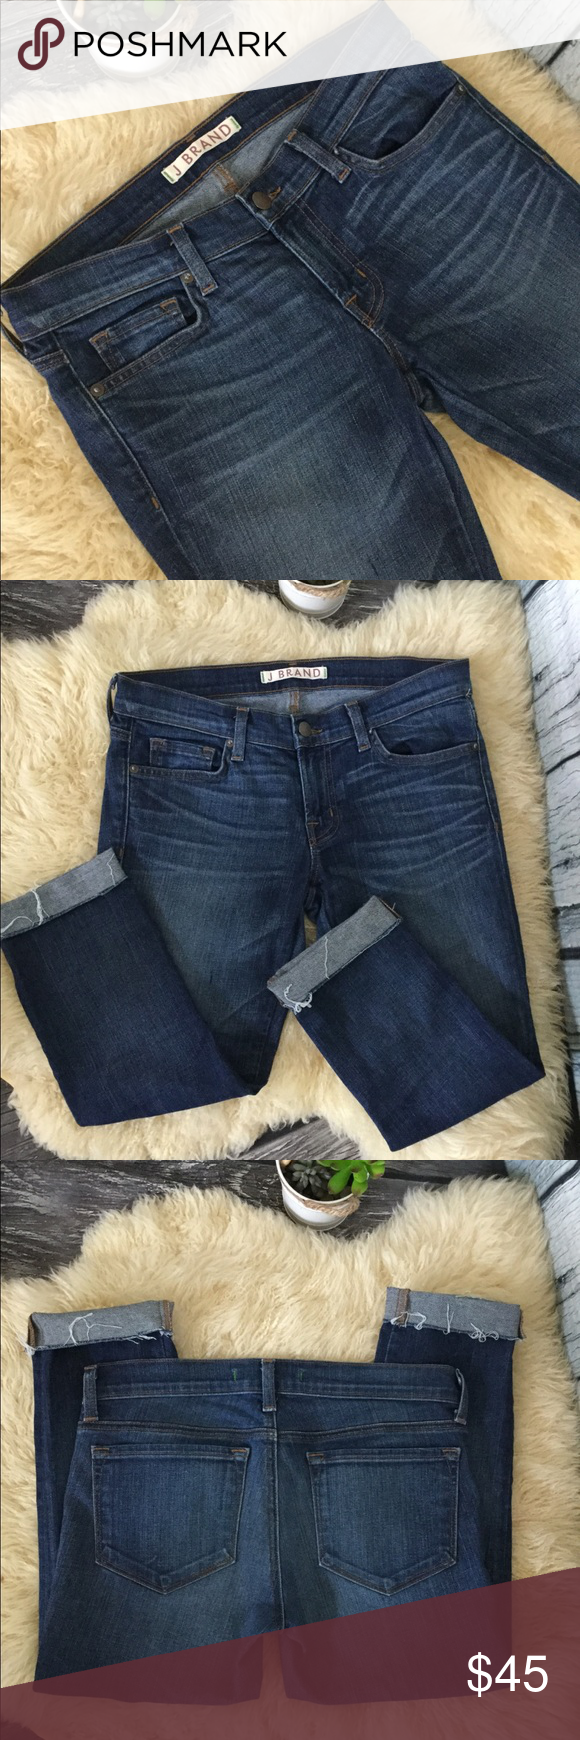 "J brand ""Phoebe"" Crop Jeans Size 27 In excellent condition"